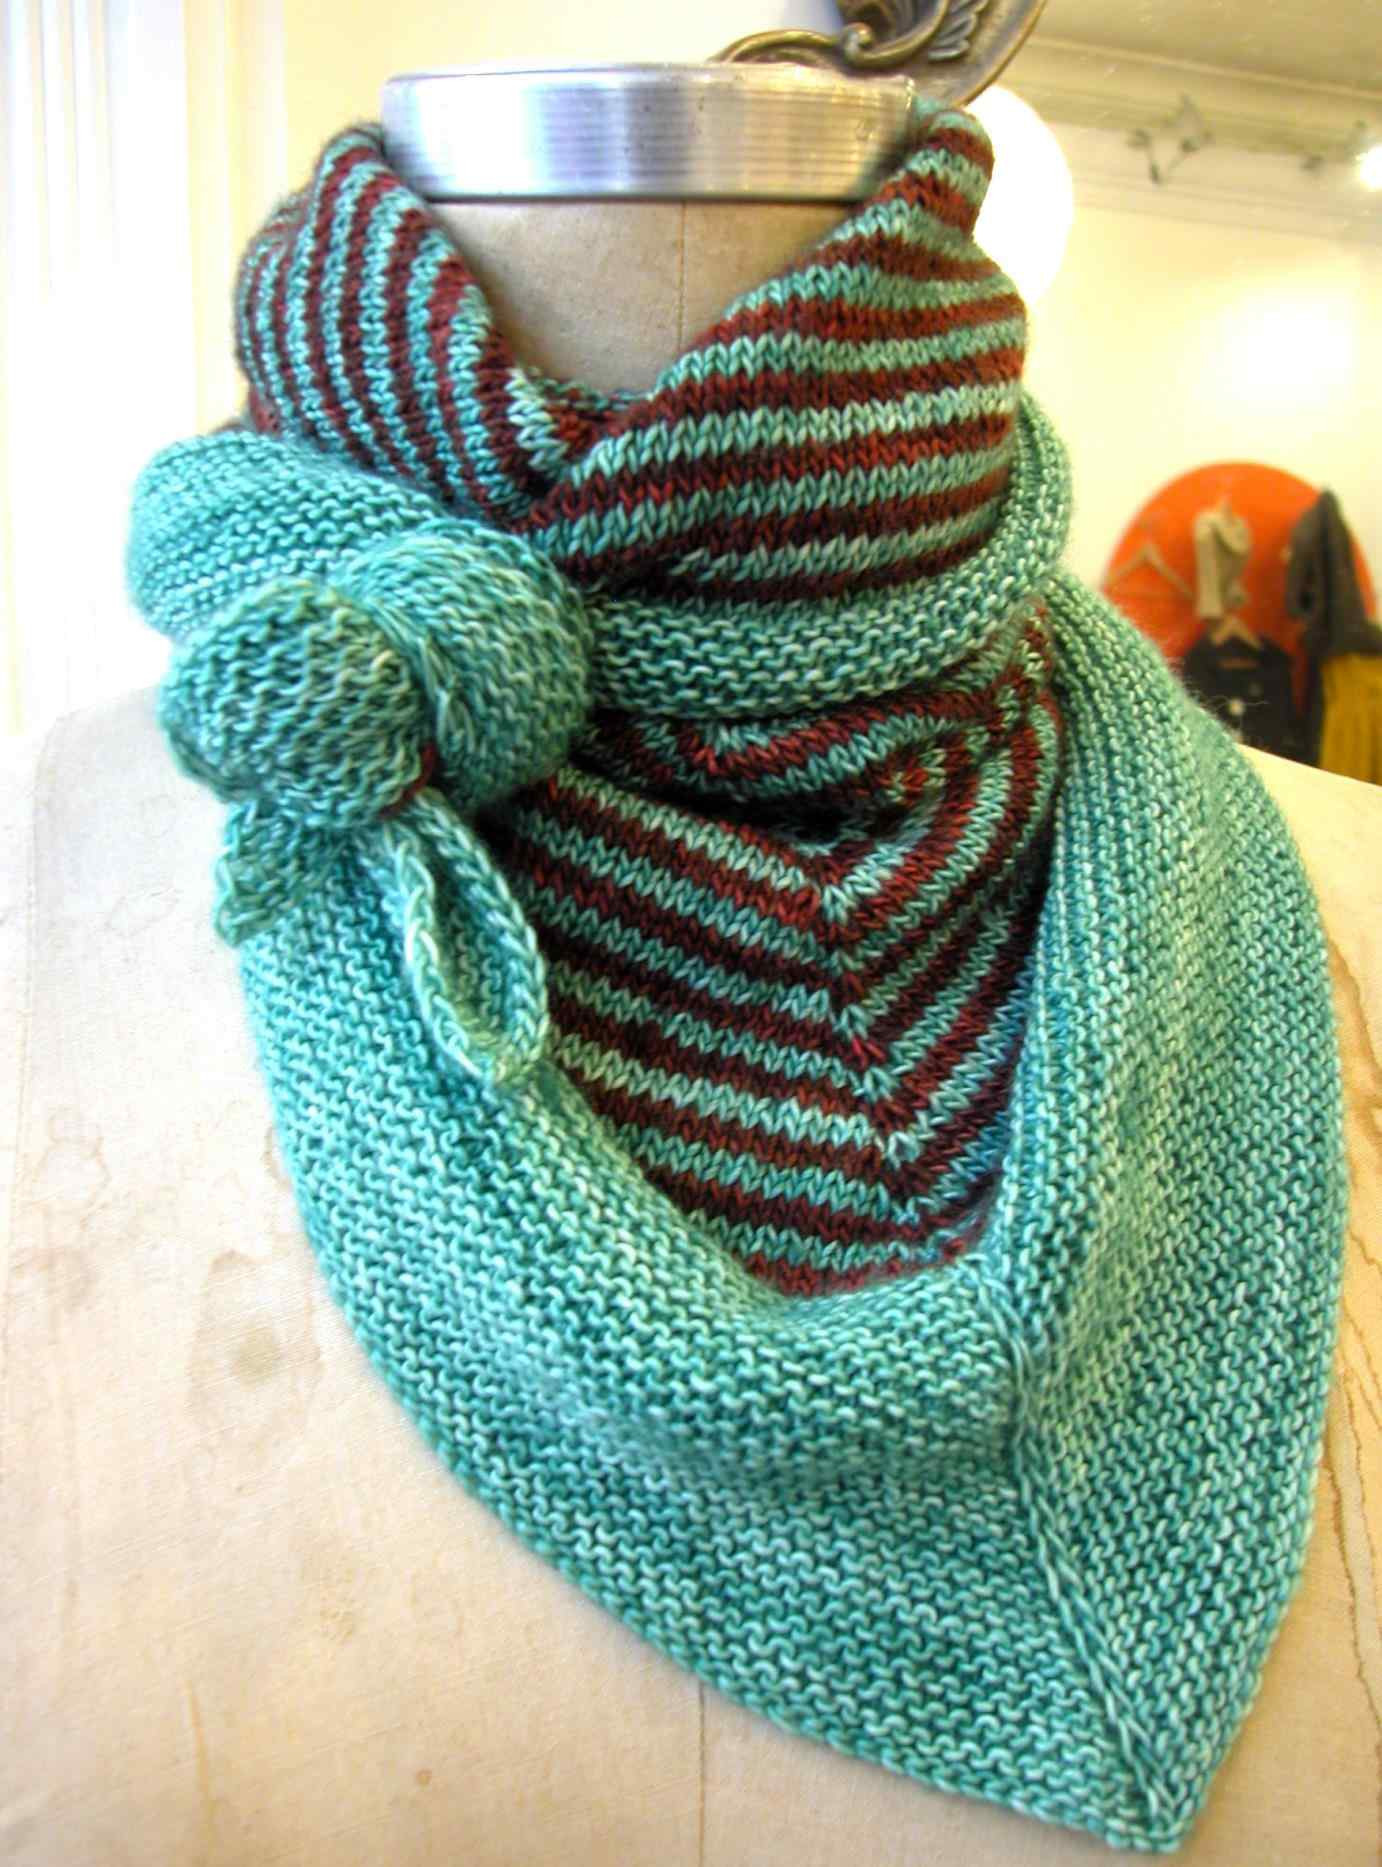 Easy Scarf Knitting Patterns Best Of 7 Triangle Scarf Knitting Patterns the Funky Stitch Of Attractive 48 Ideas Easy Scarf Knitting Patterns